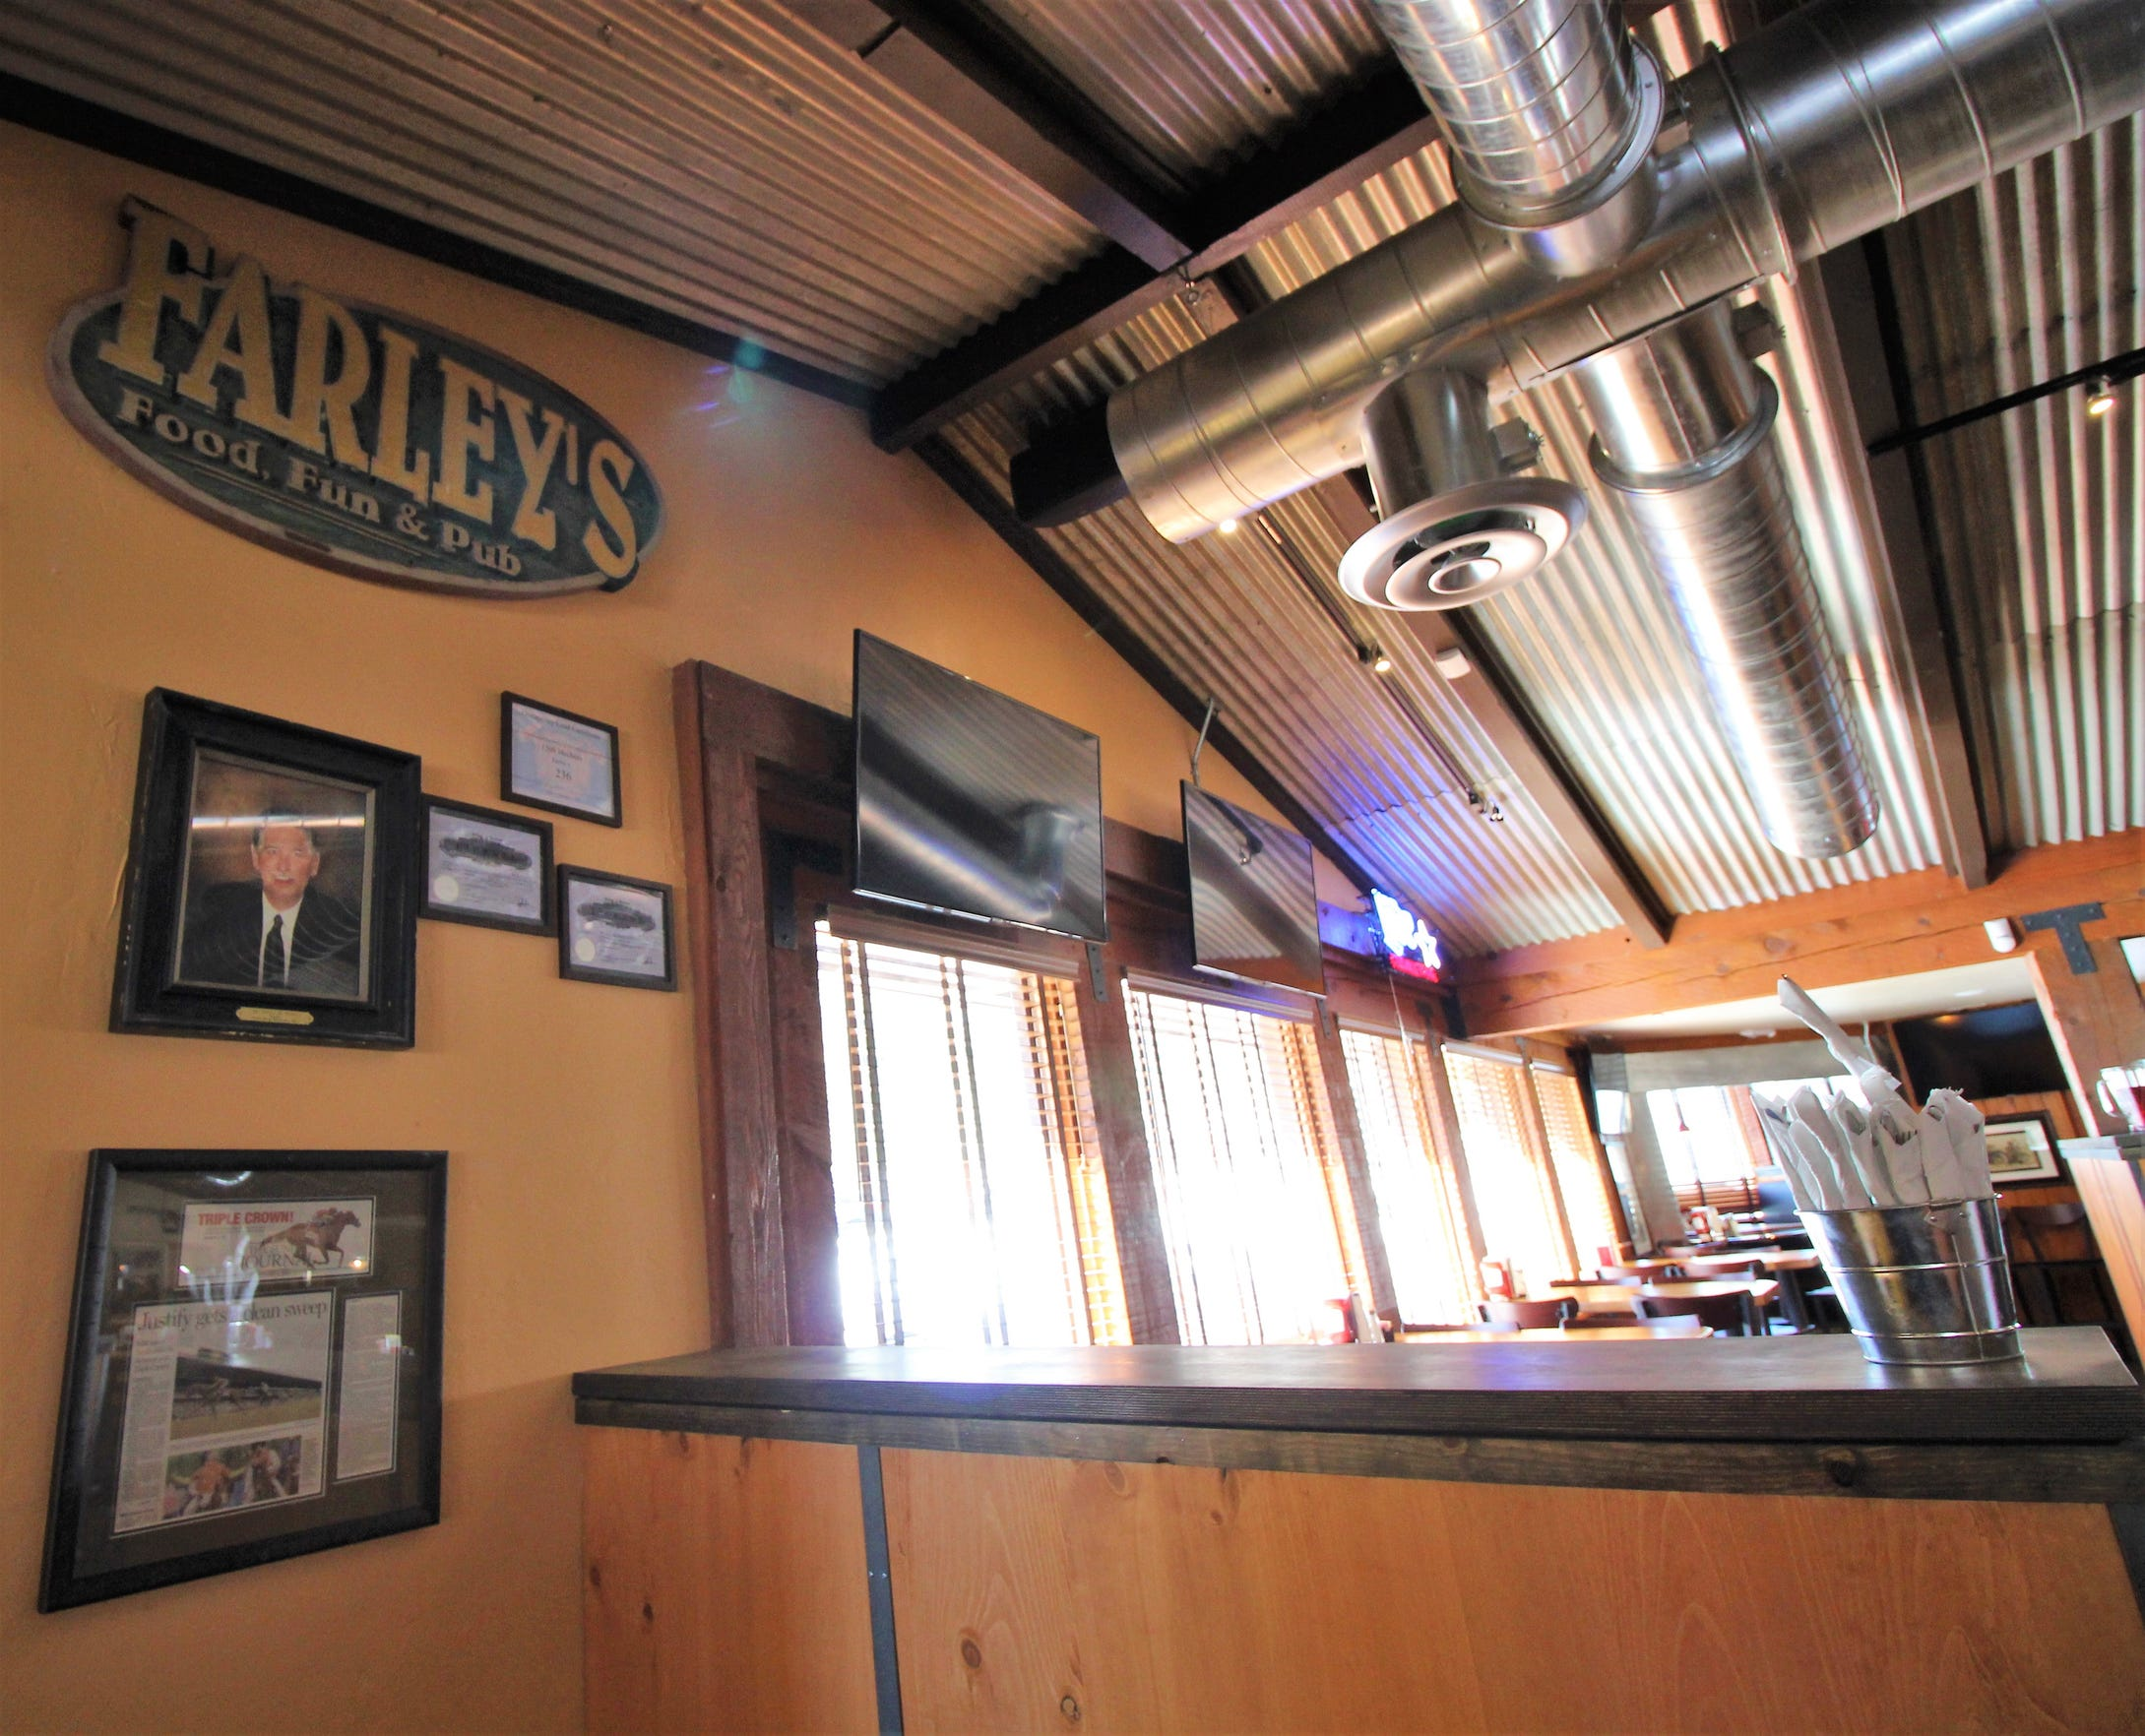 Farley's founder hangs on the wall in the entrance, memorabilia never to be forgotten or misplaced.